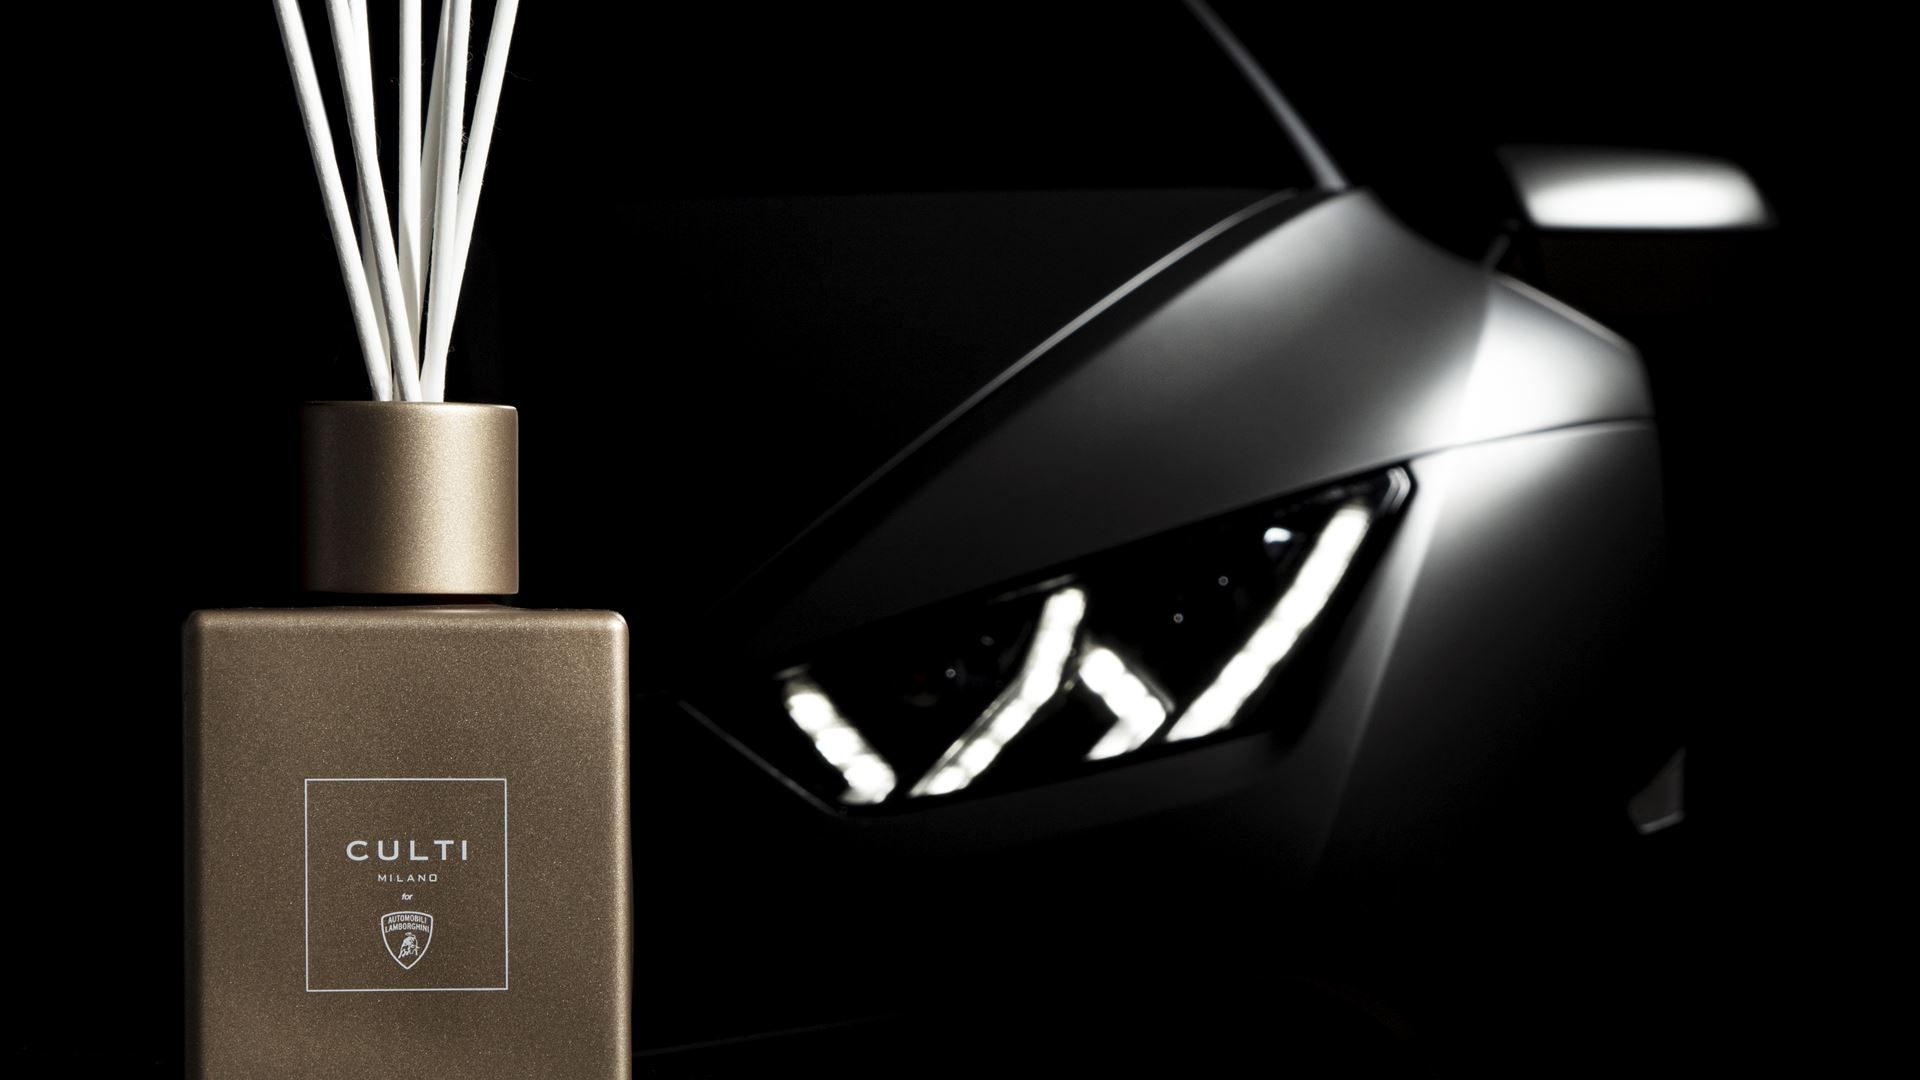 The first olfactory Automobili Lamborghini branding project signed by Culti Milano - Image 8